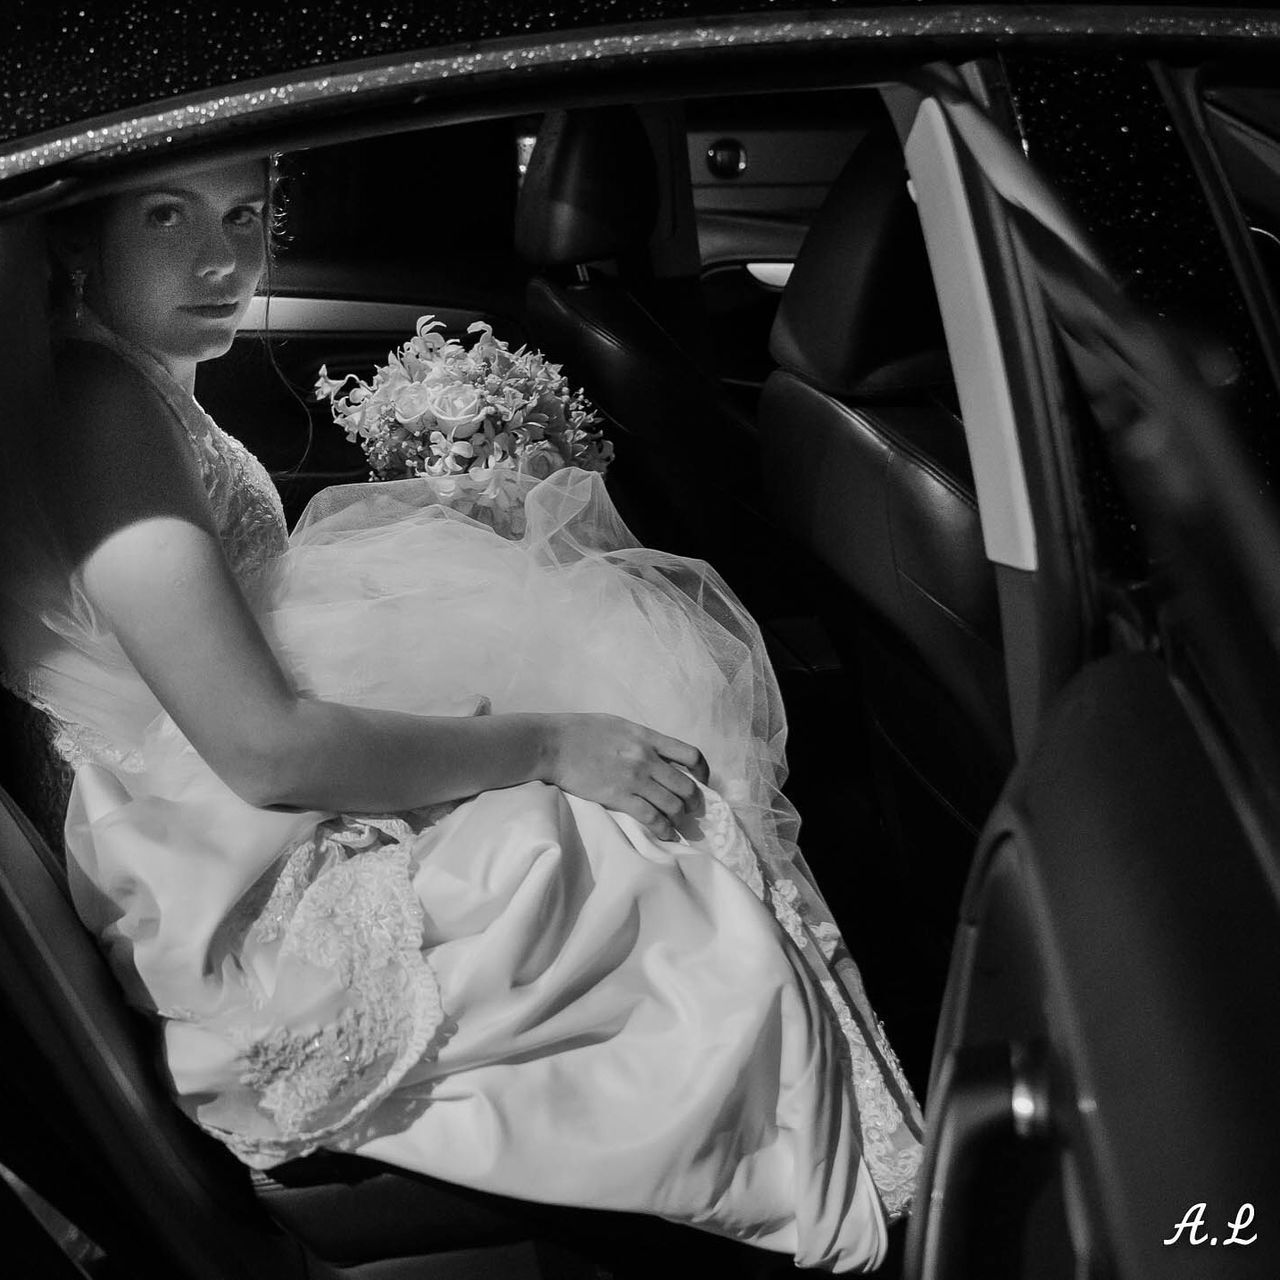 car, land vehicle, transportation, mode of transport, car interior, real people, sitting, bride, wedding dress, day, young adult, one person, outdoors, people